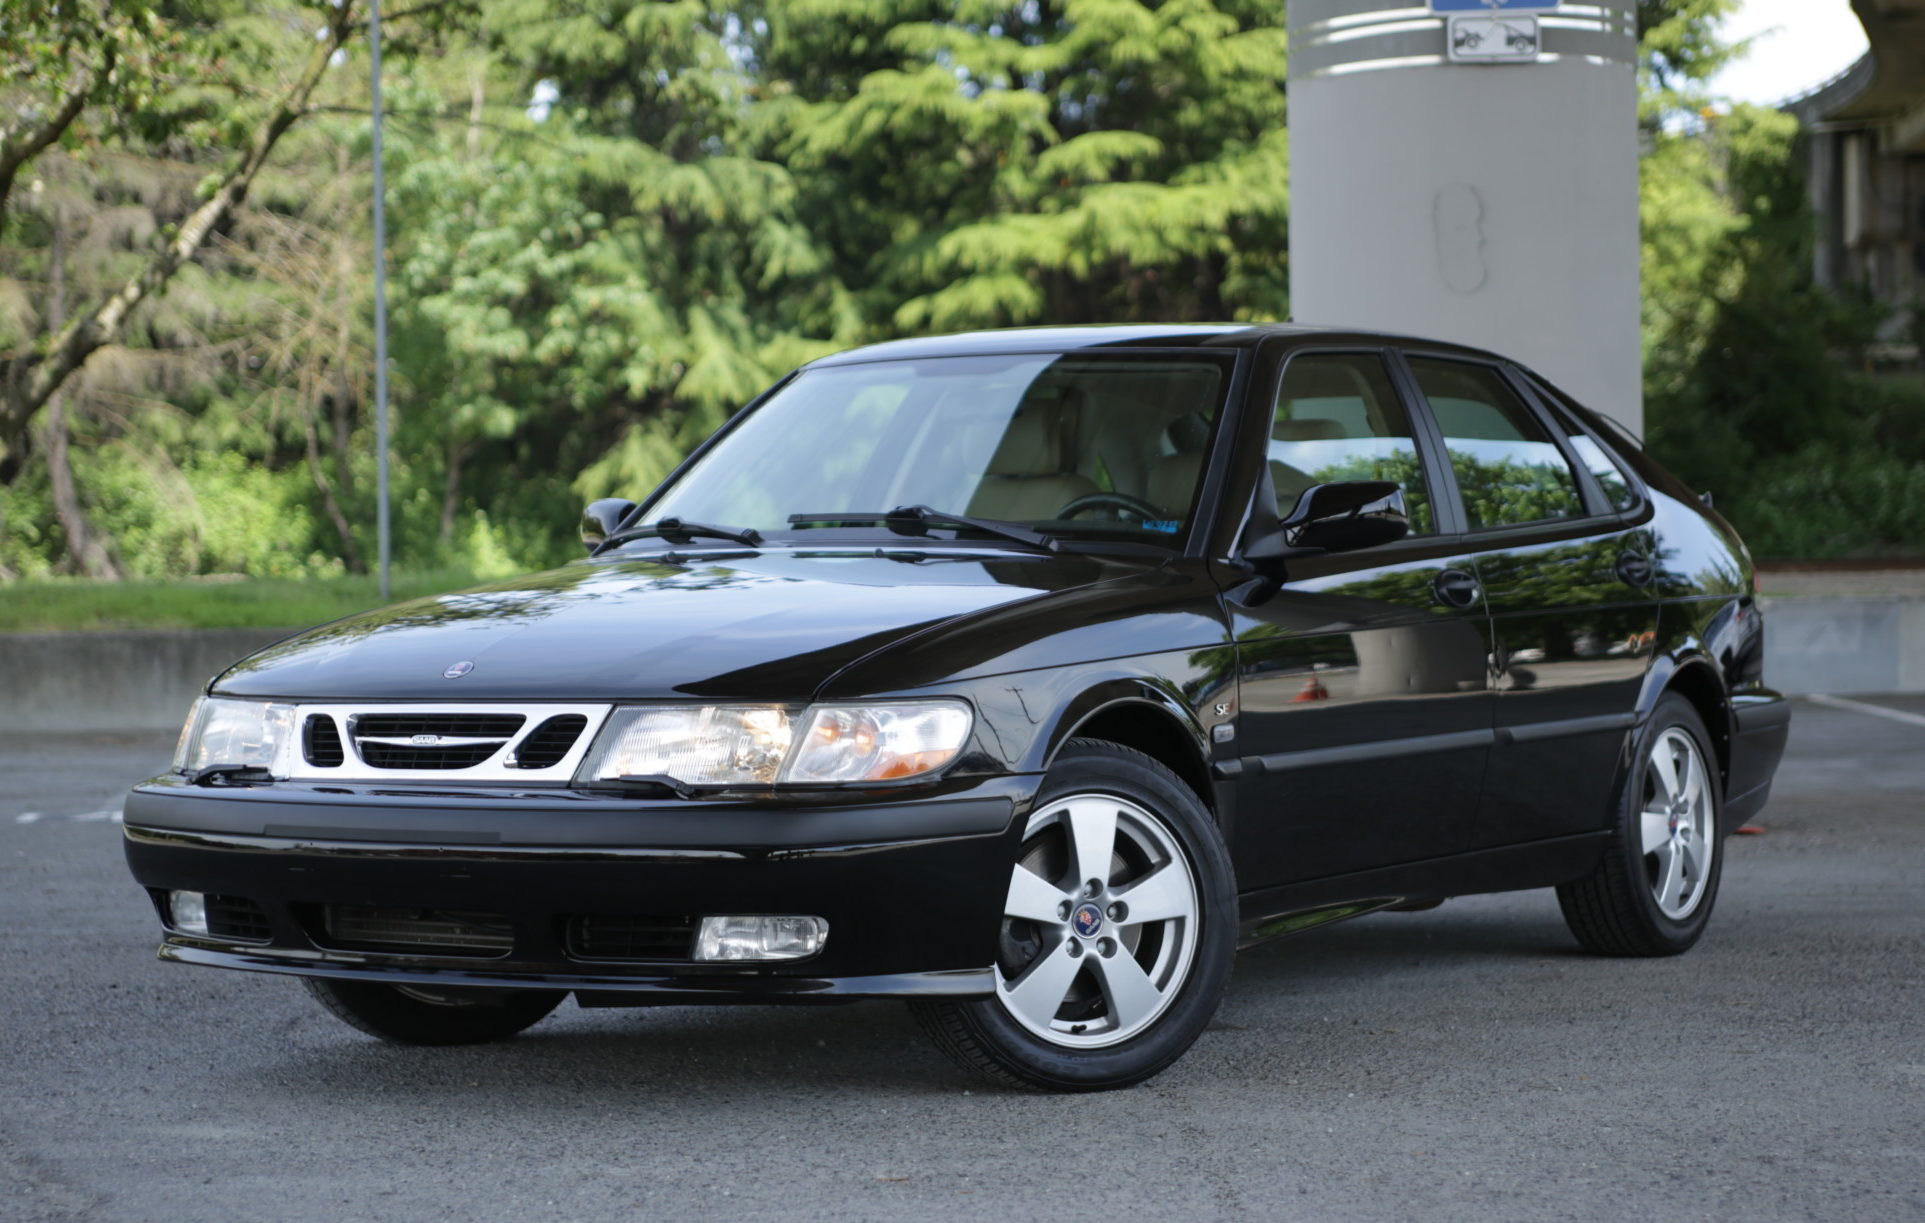 hight resolution of no reserve 36k mile 2002 saab 9 3 5 speed for sale on bat auctions sold for 10 100 on june 10 2019 lot 19 684 bring a trailer